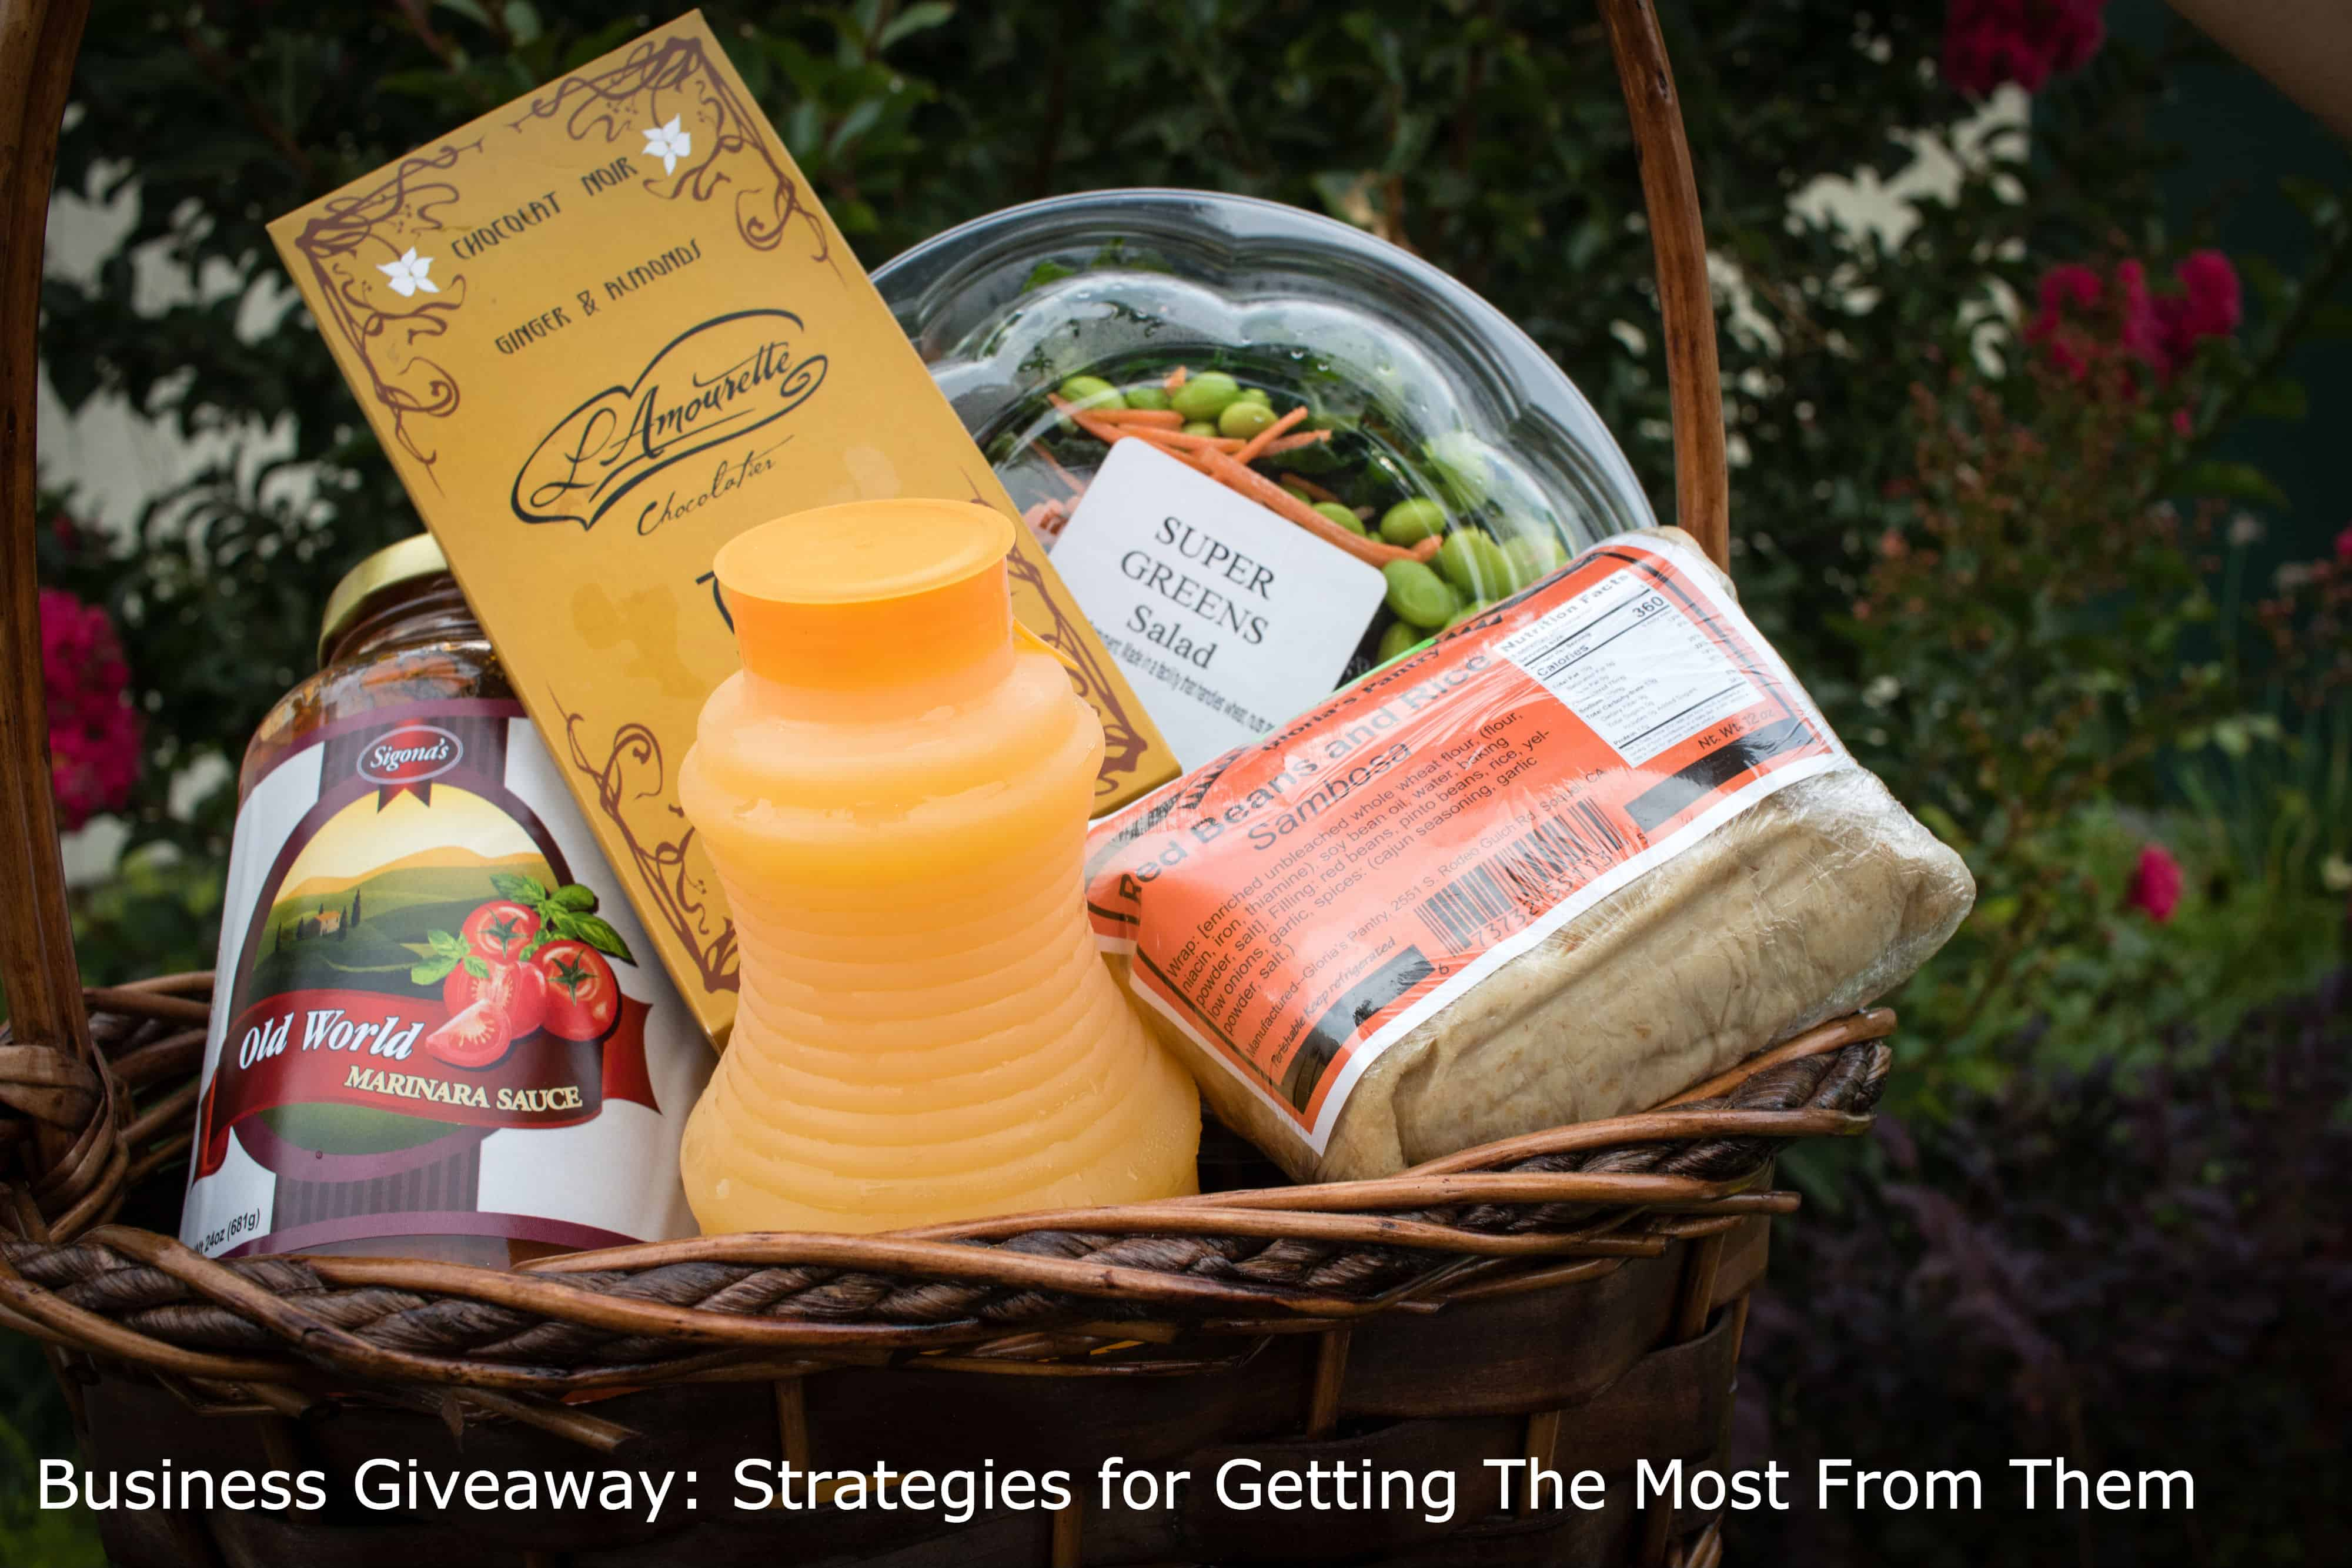 Business Giveaway: Strategies for Getting the Most From Them